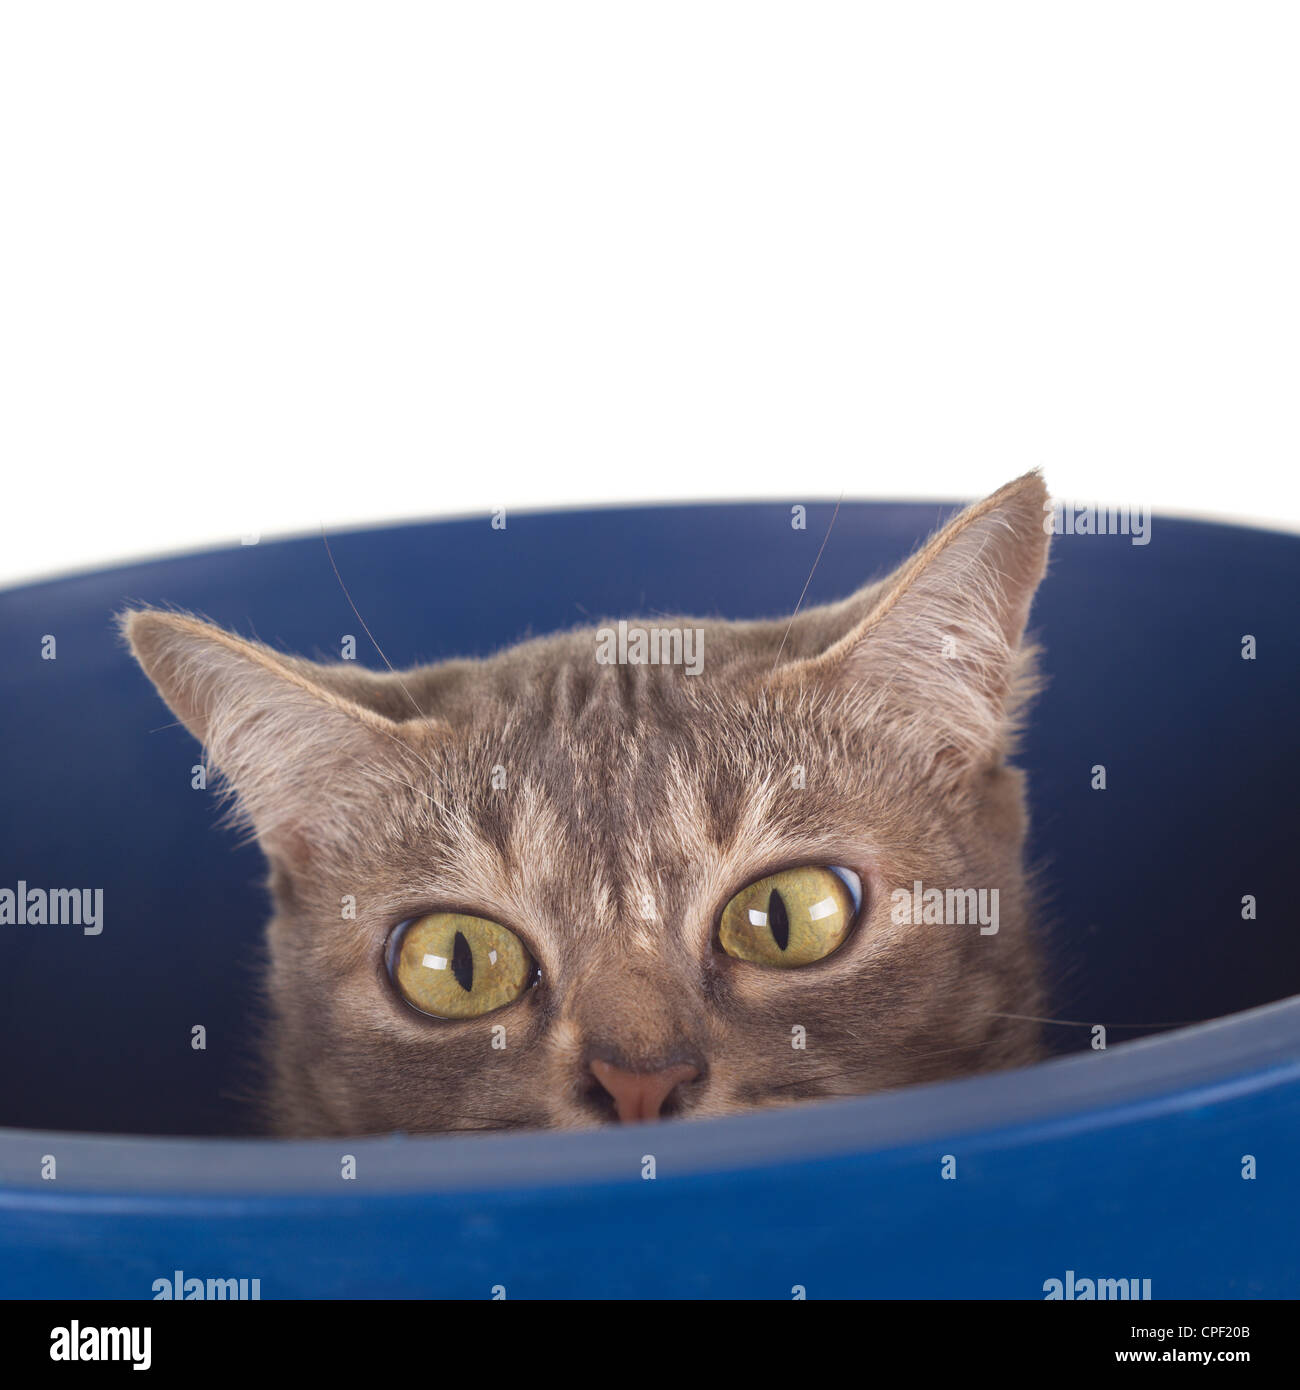 Tabby Cat with Crooked Nose in a Bucket - Stock Image